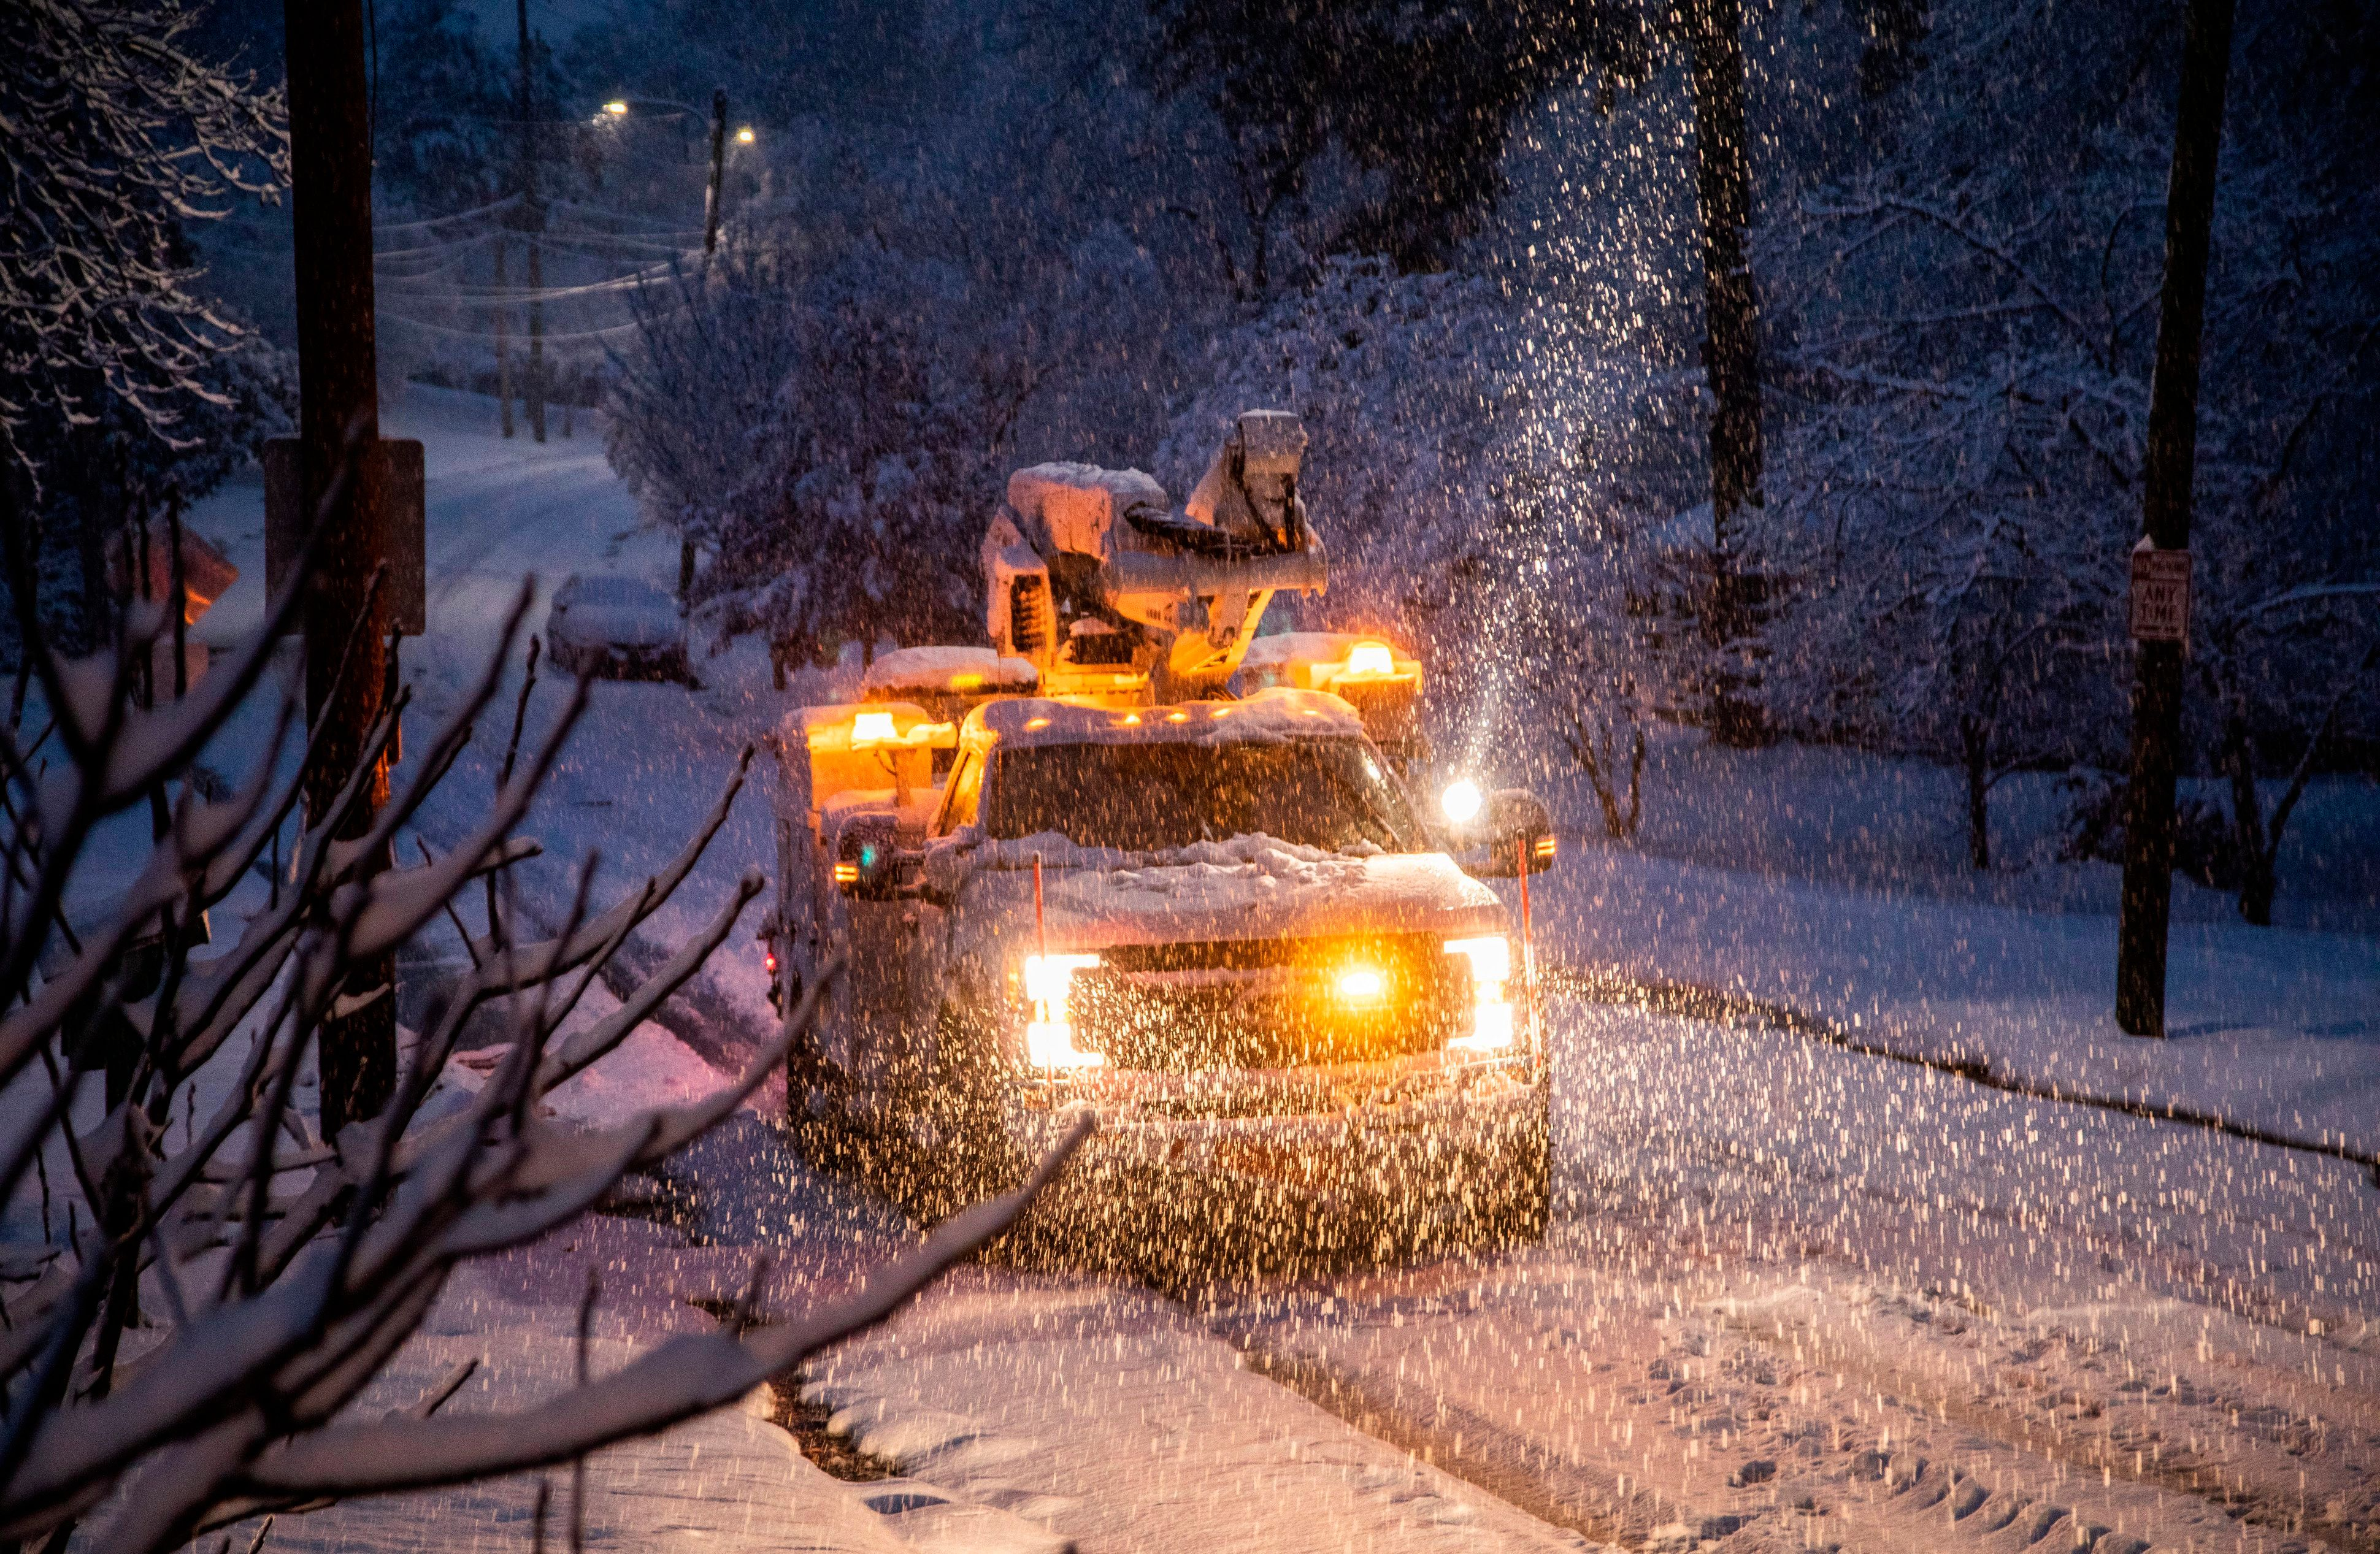 A Duke Energy crew works to restore power in Raleigh, N.C,. as snow continues to fall Sunday morning, Dec. 9, 2018. A storm spreading snow, sleet and freezing rain across a wide swath of the South has millions of people in its path, raising the threat of immobilizing snowfalls, icy roads and power outages. (Travis Long/The News & Observer via AP)